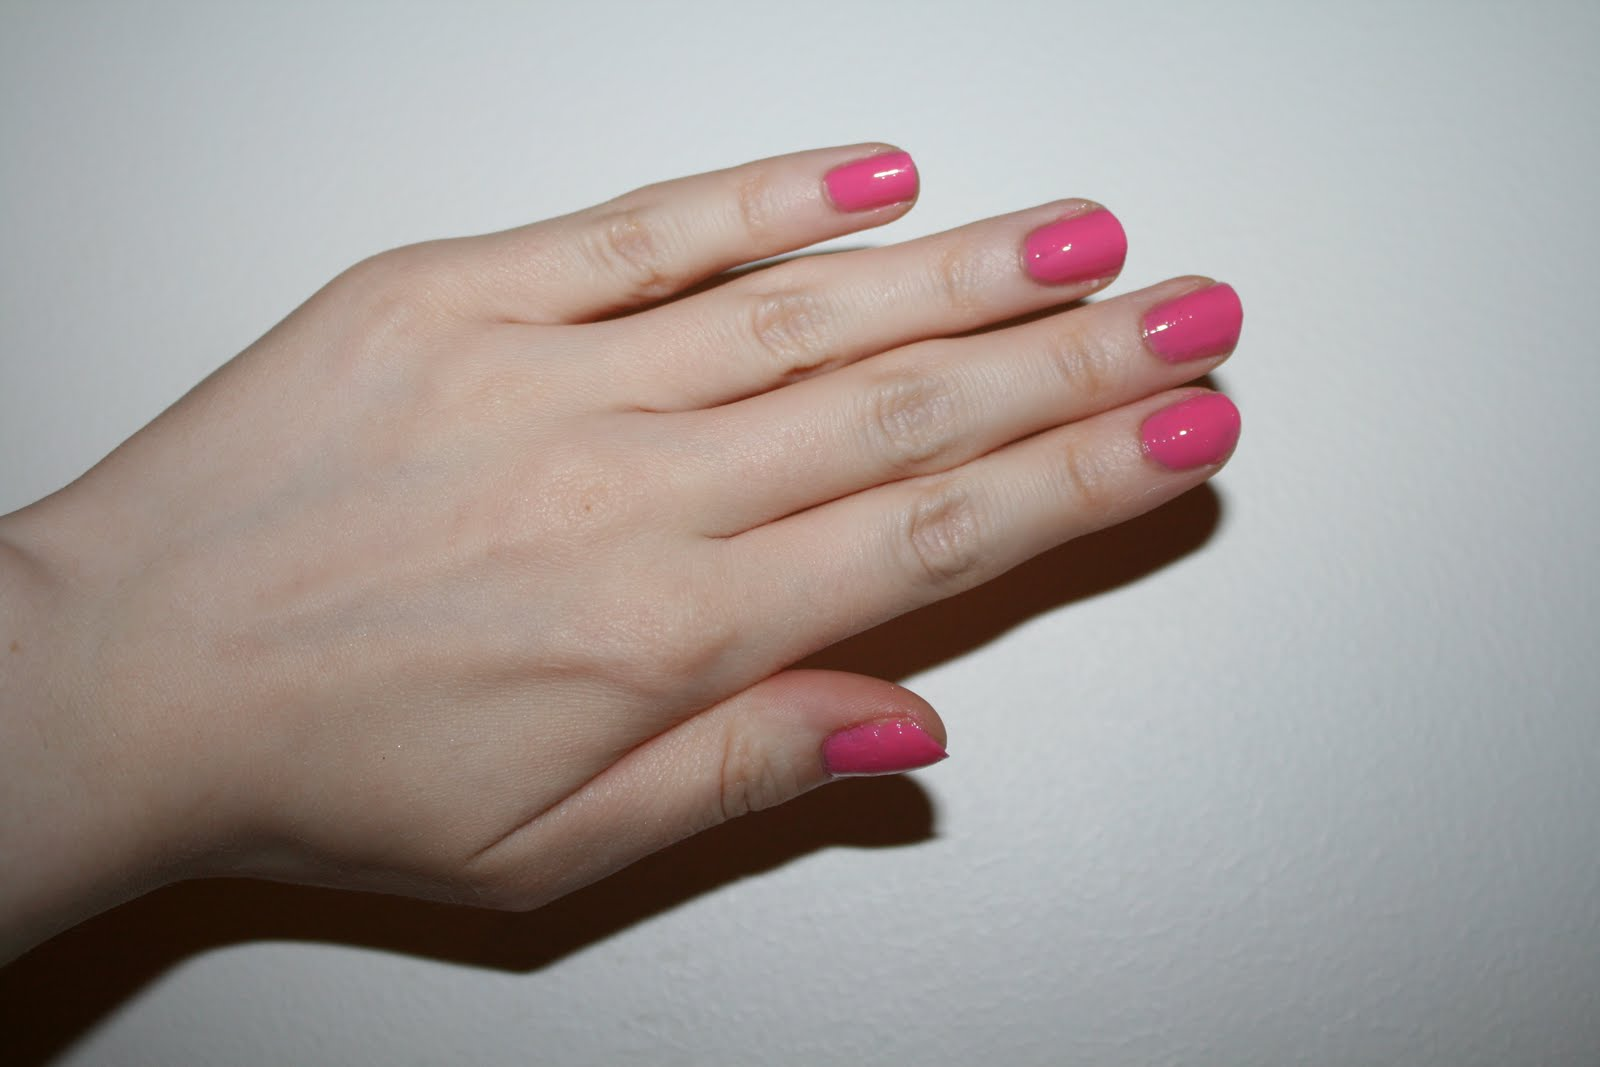 Makeup, Beauty & Fashion: Nails Of The Day: Gum Pink